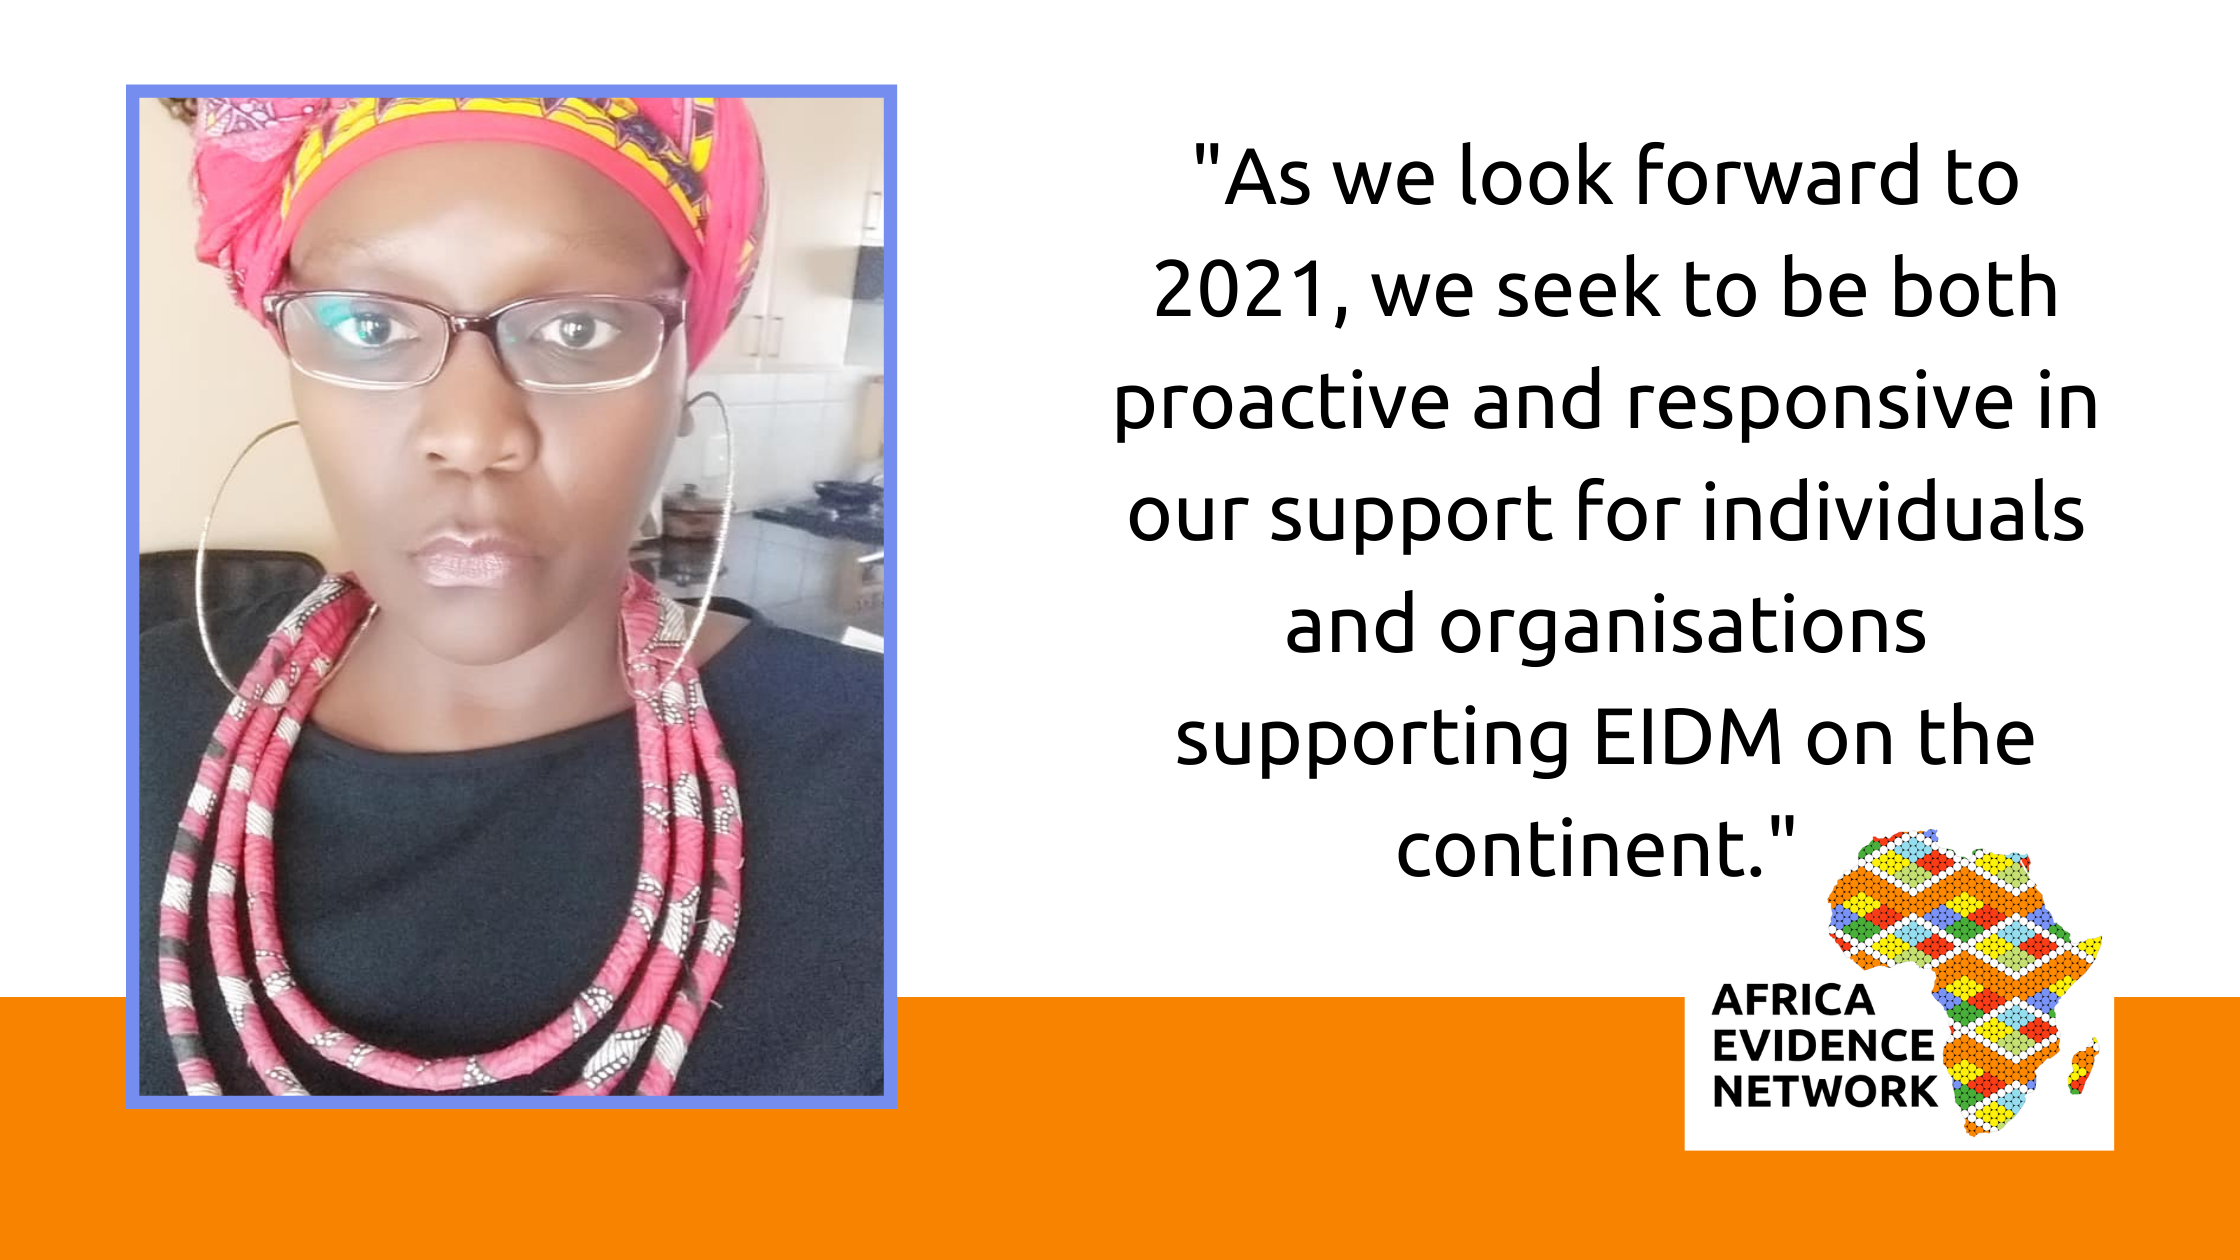 Highlights for 2020 and what does 2021 hold for Africa Evidence Network (AEN)?